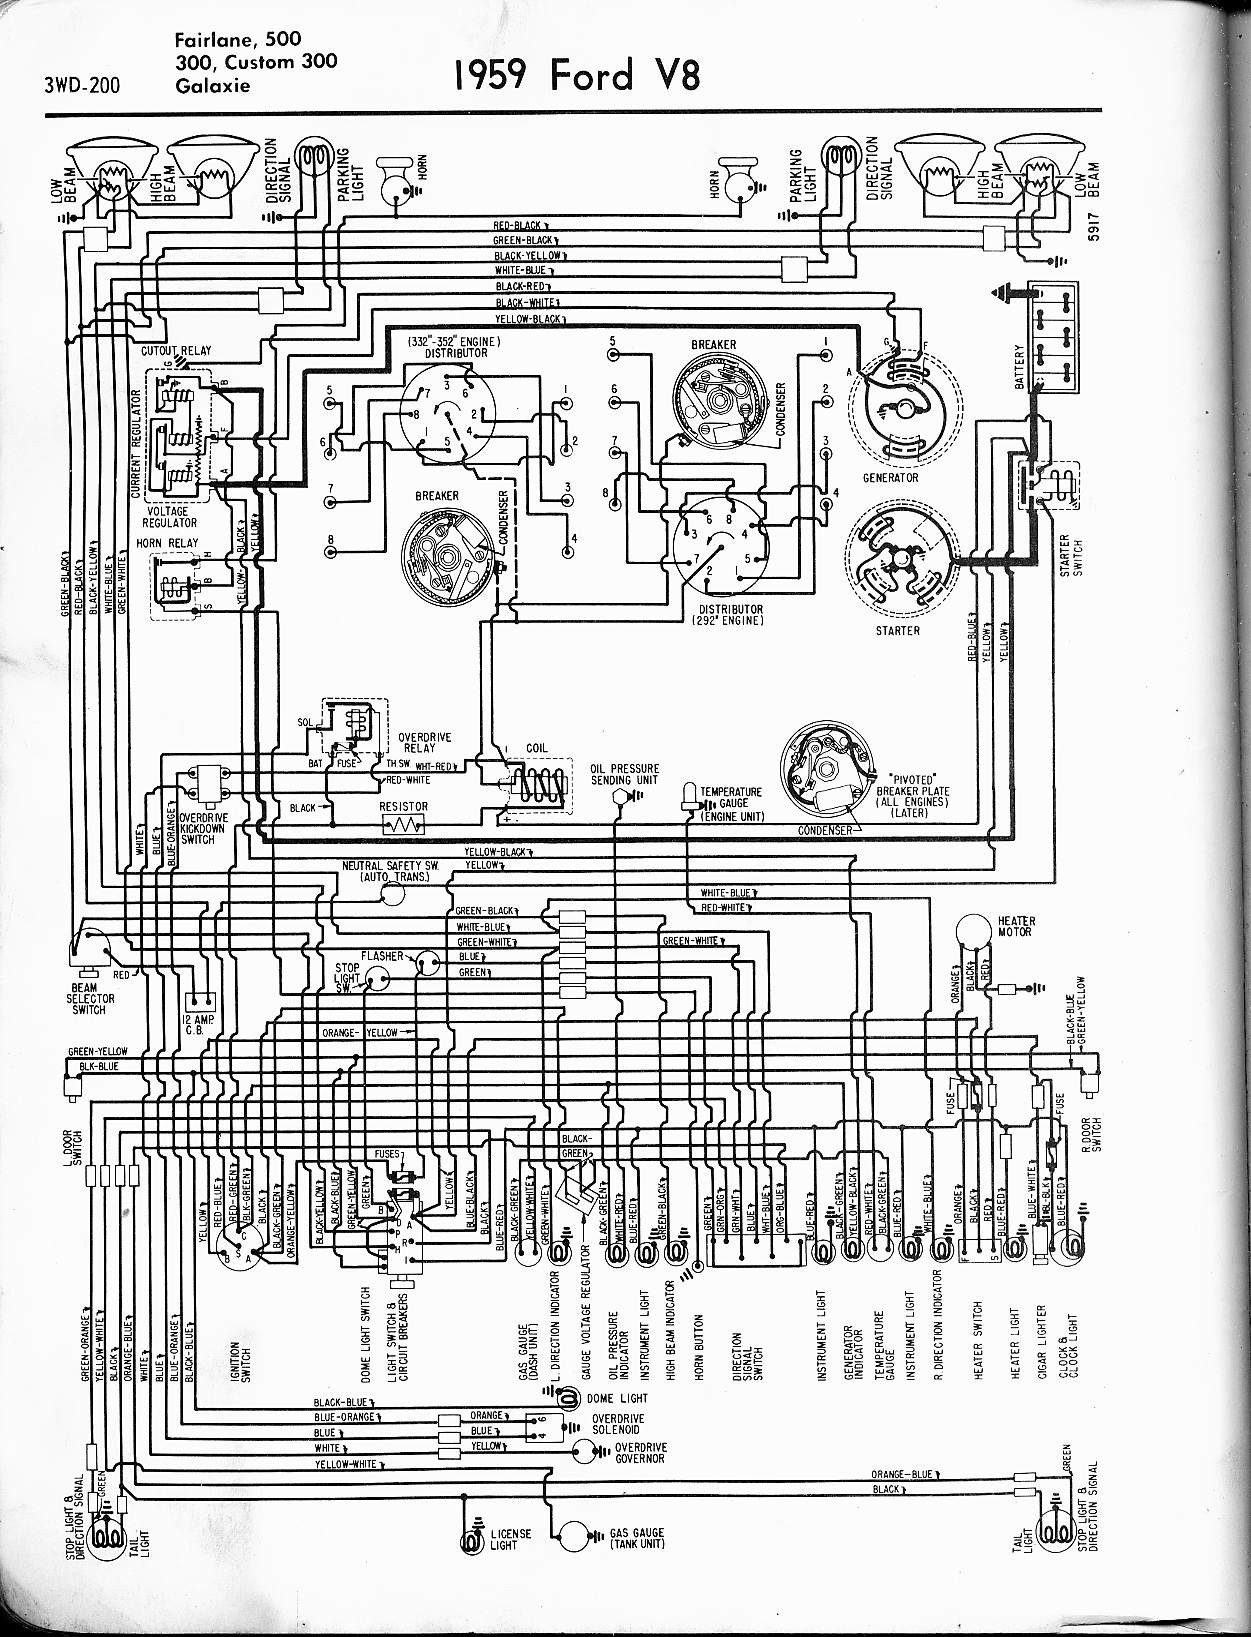 Mercury Mark 55e Wiring Diagram 57 65 ford Wiring Diagrams Of Mercury Mark 55e Wiring Diagram